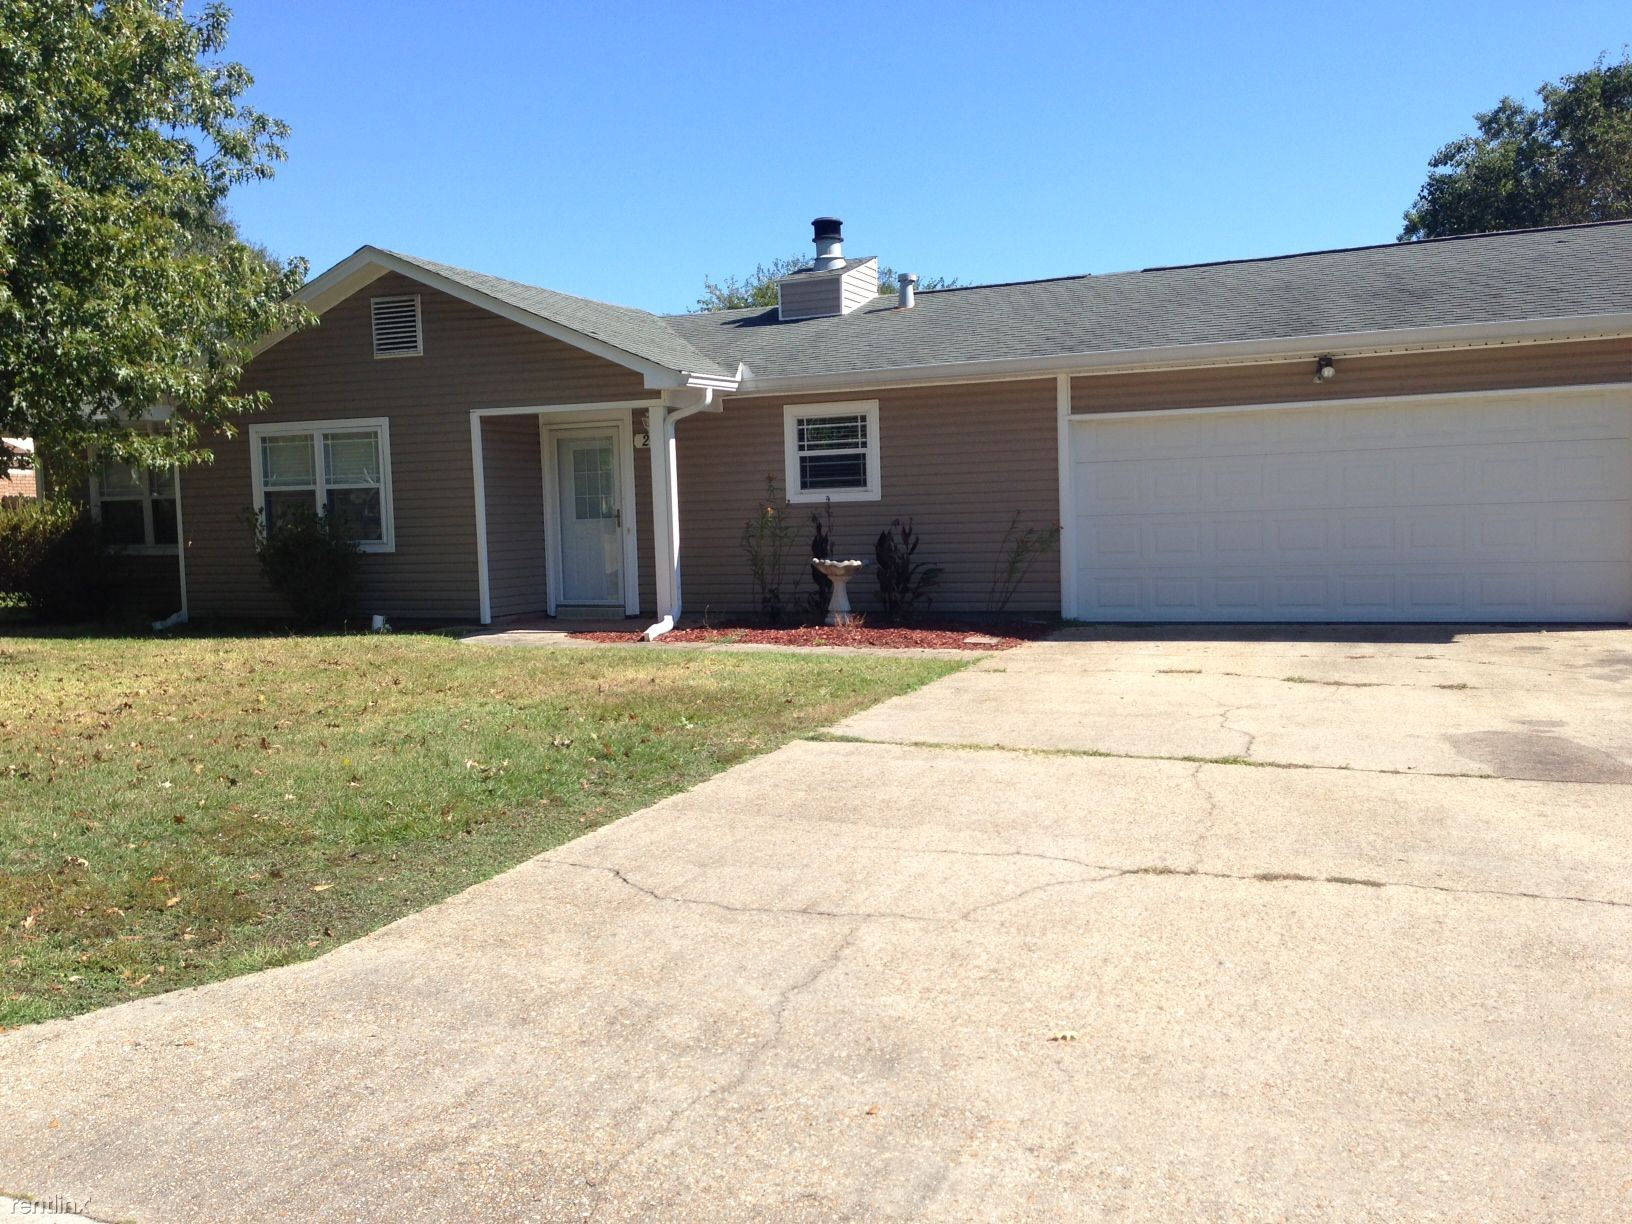 22 Jay Dr, Gulfport, MS - 1,250 USD/ month